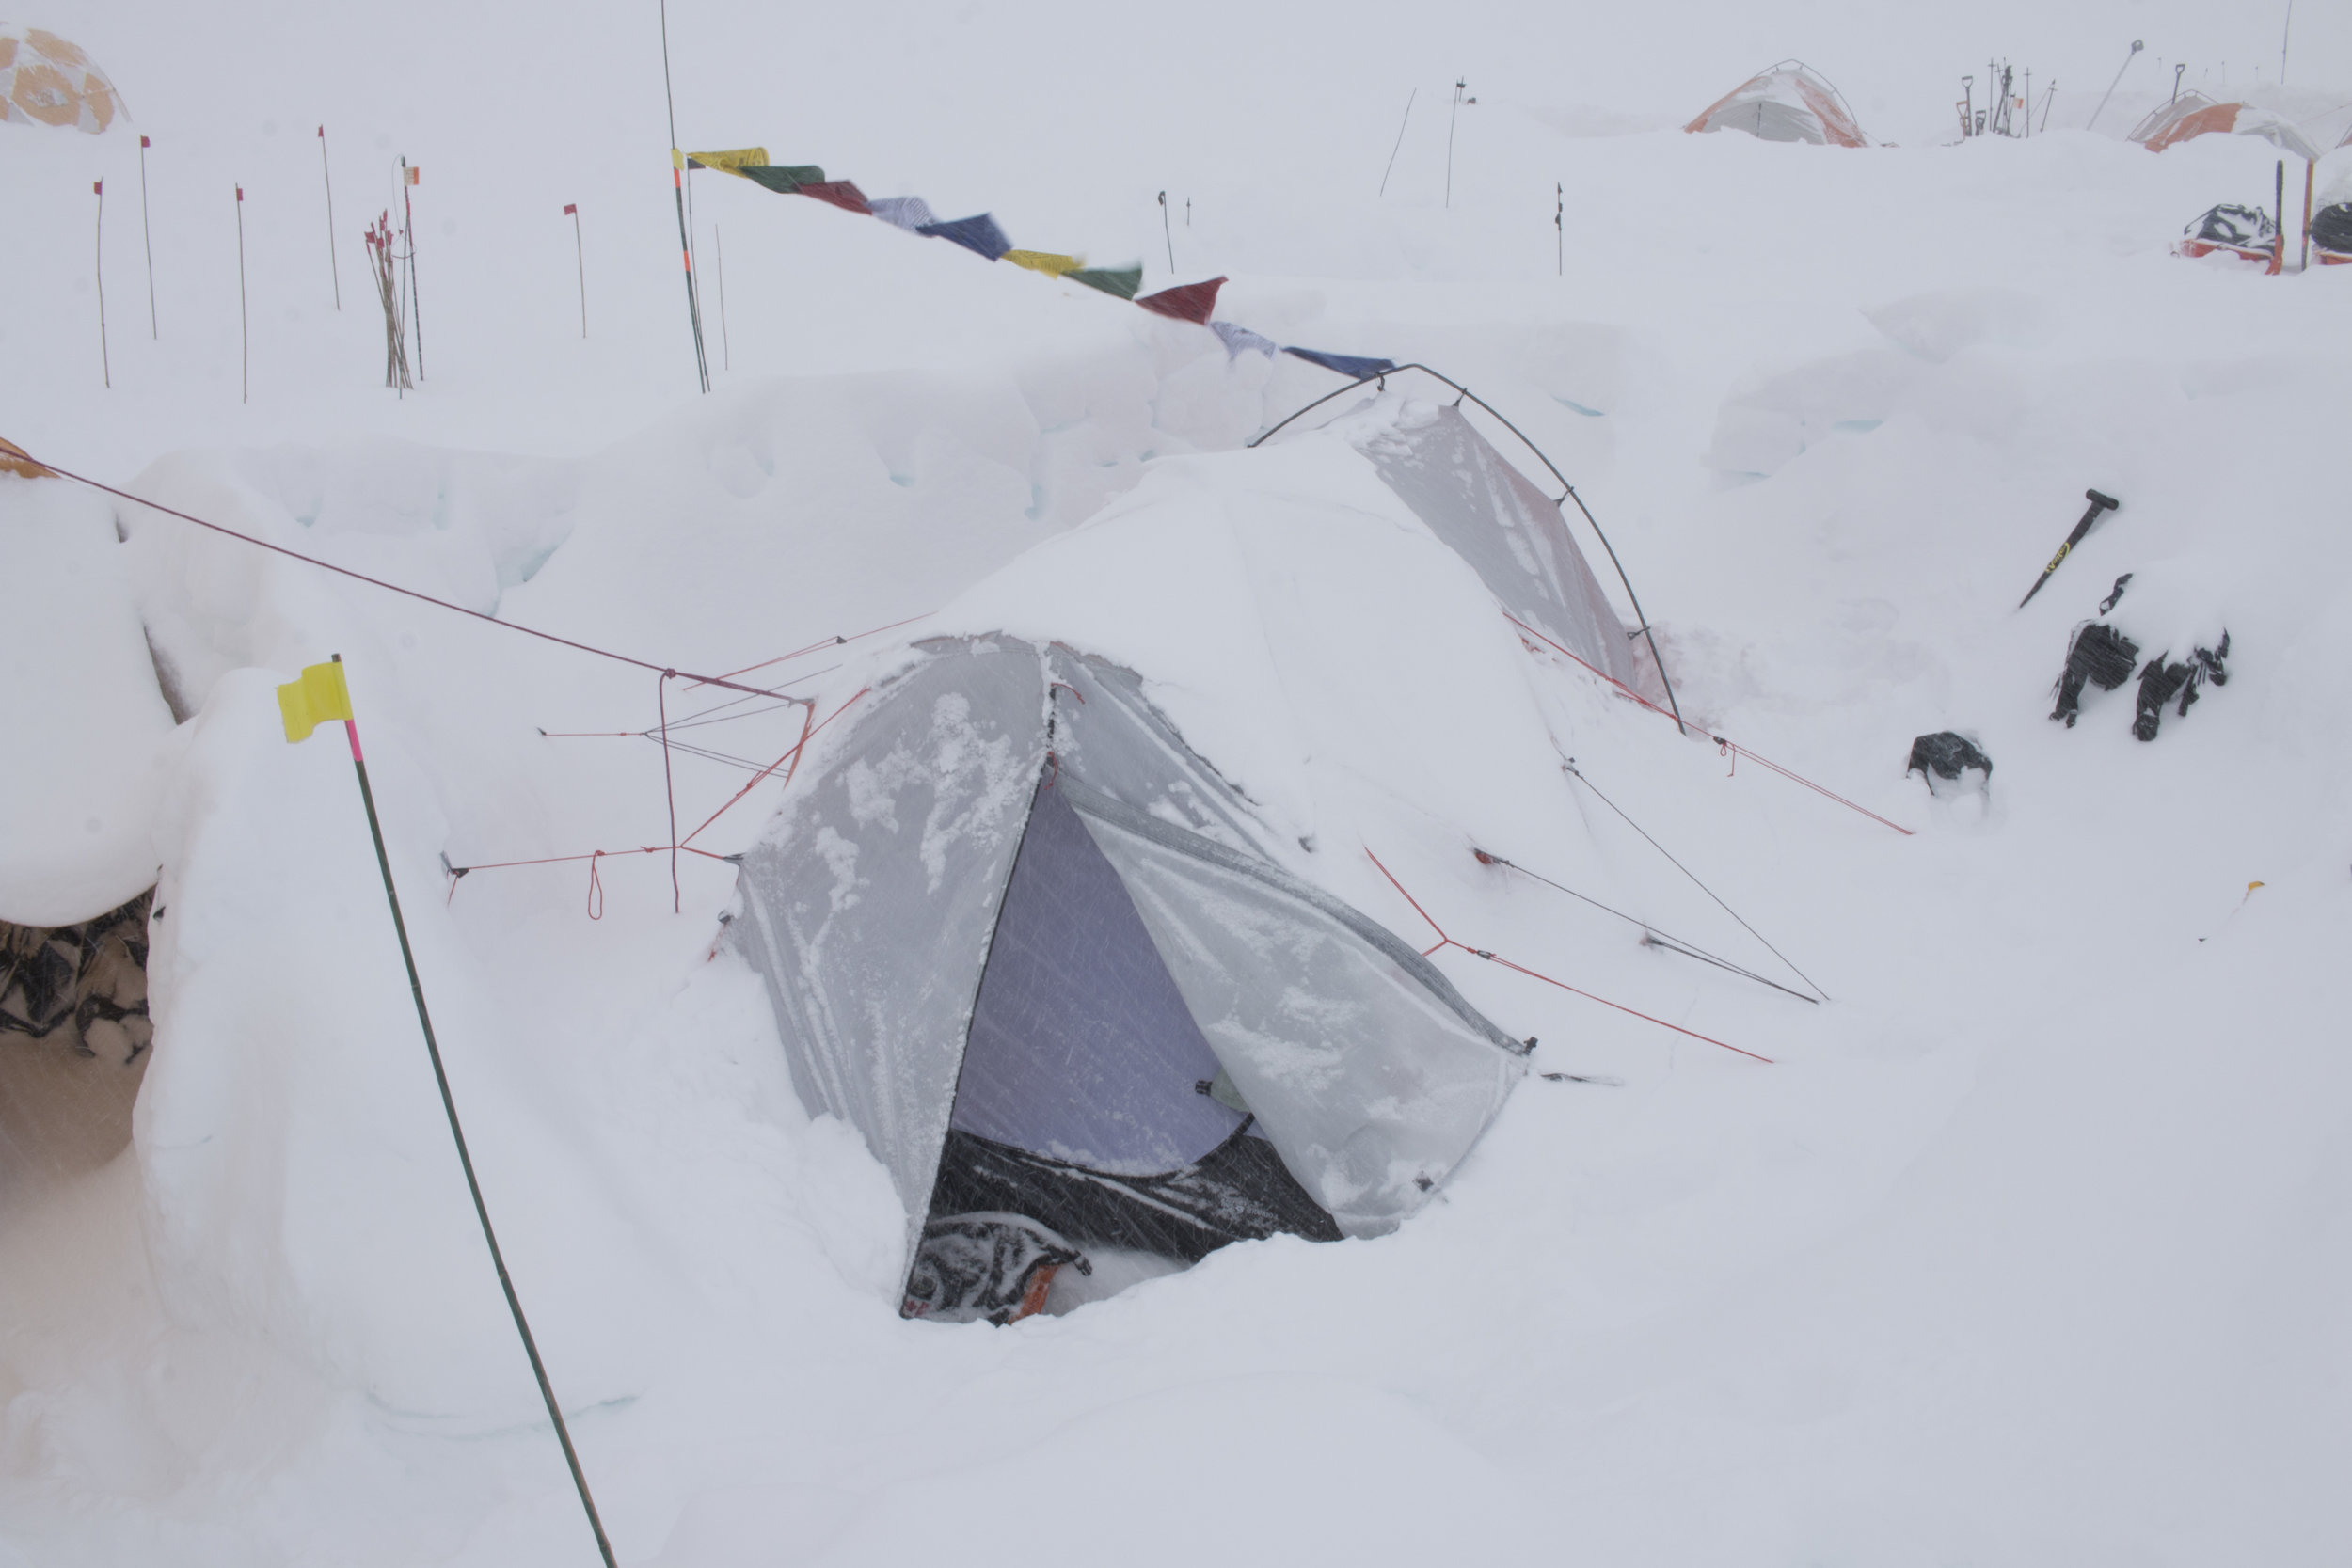 Camp 3 @14,200' after a heavy snowfall.